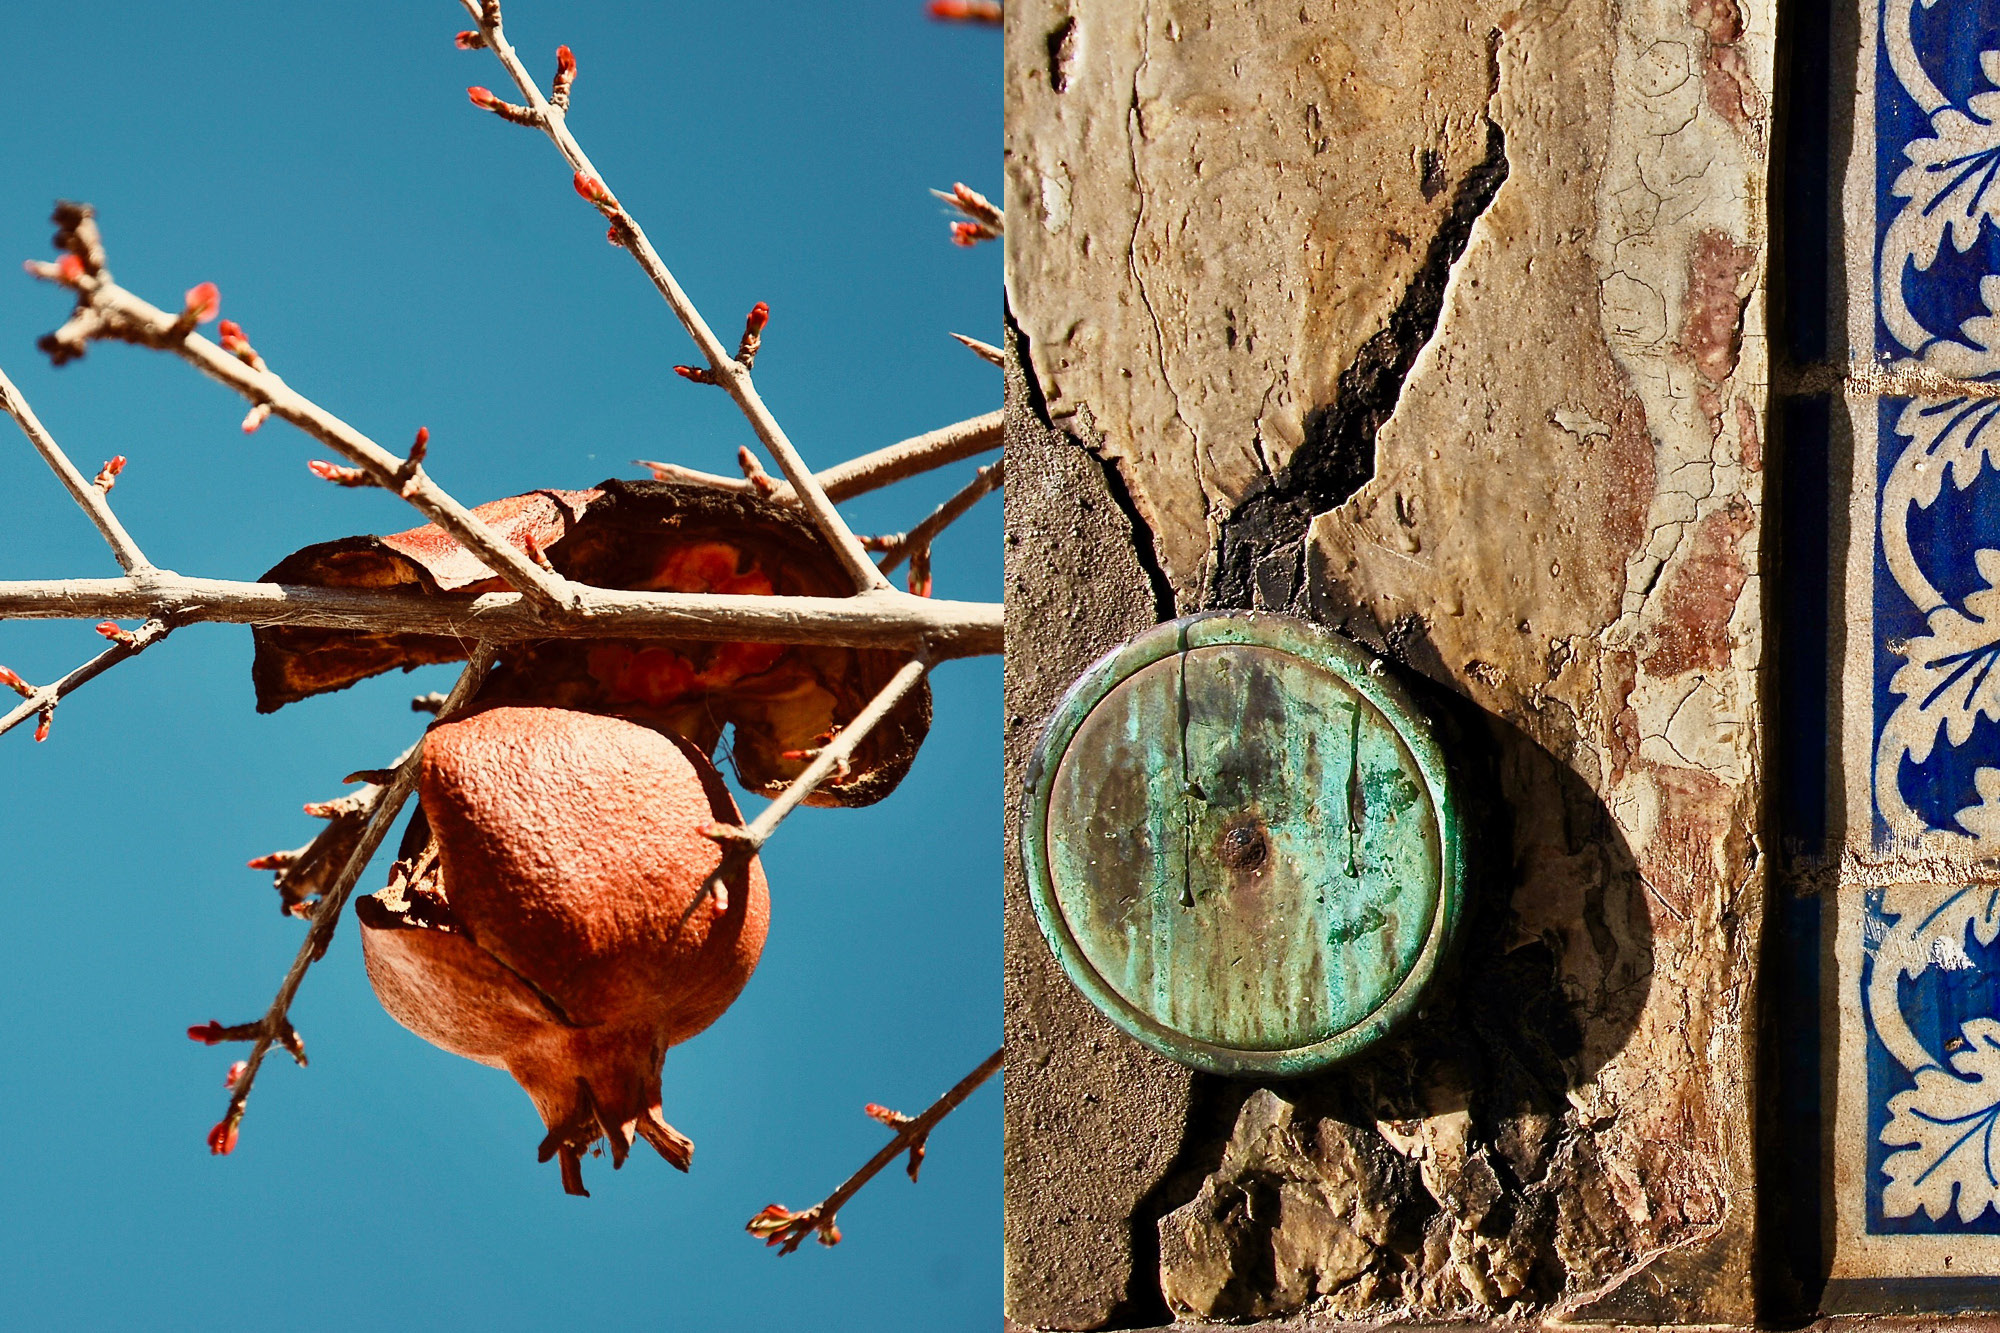 Two photos one showing a dried seed on a branch of a tree and the other a piece of aged wood with a circle-shaped piece of wood nailed on top of the board.